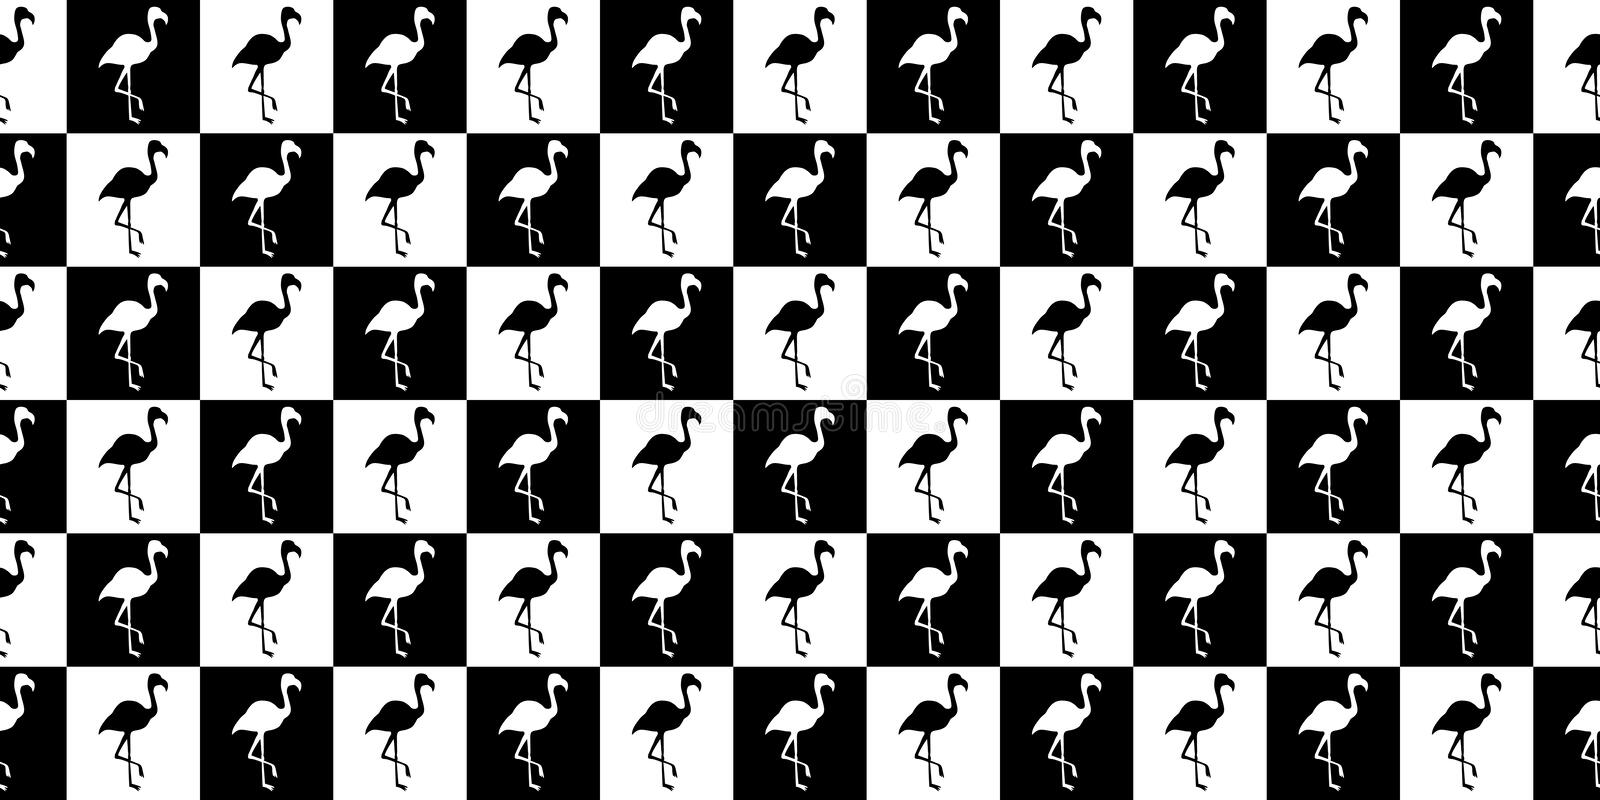 Silhouette of a flamingo geometric seamless pattern. Silhouette of flamingos in black and white squares royalty free illustration